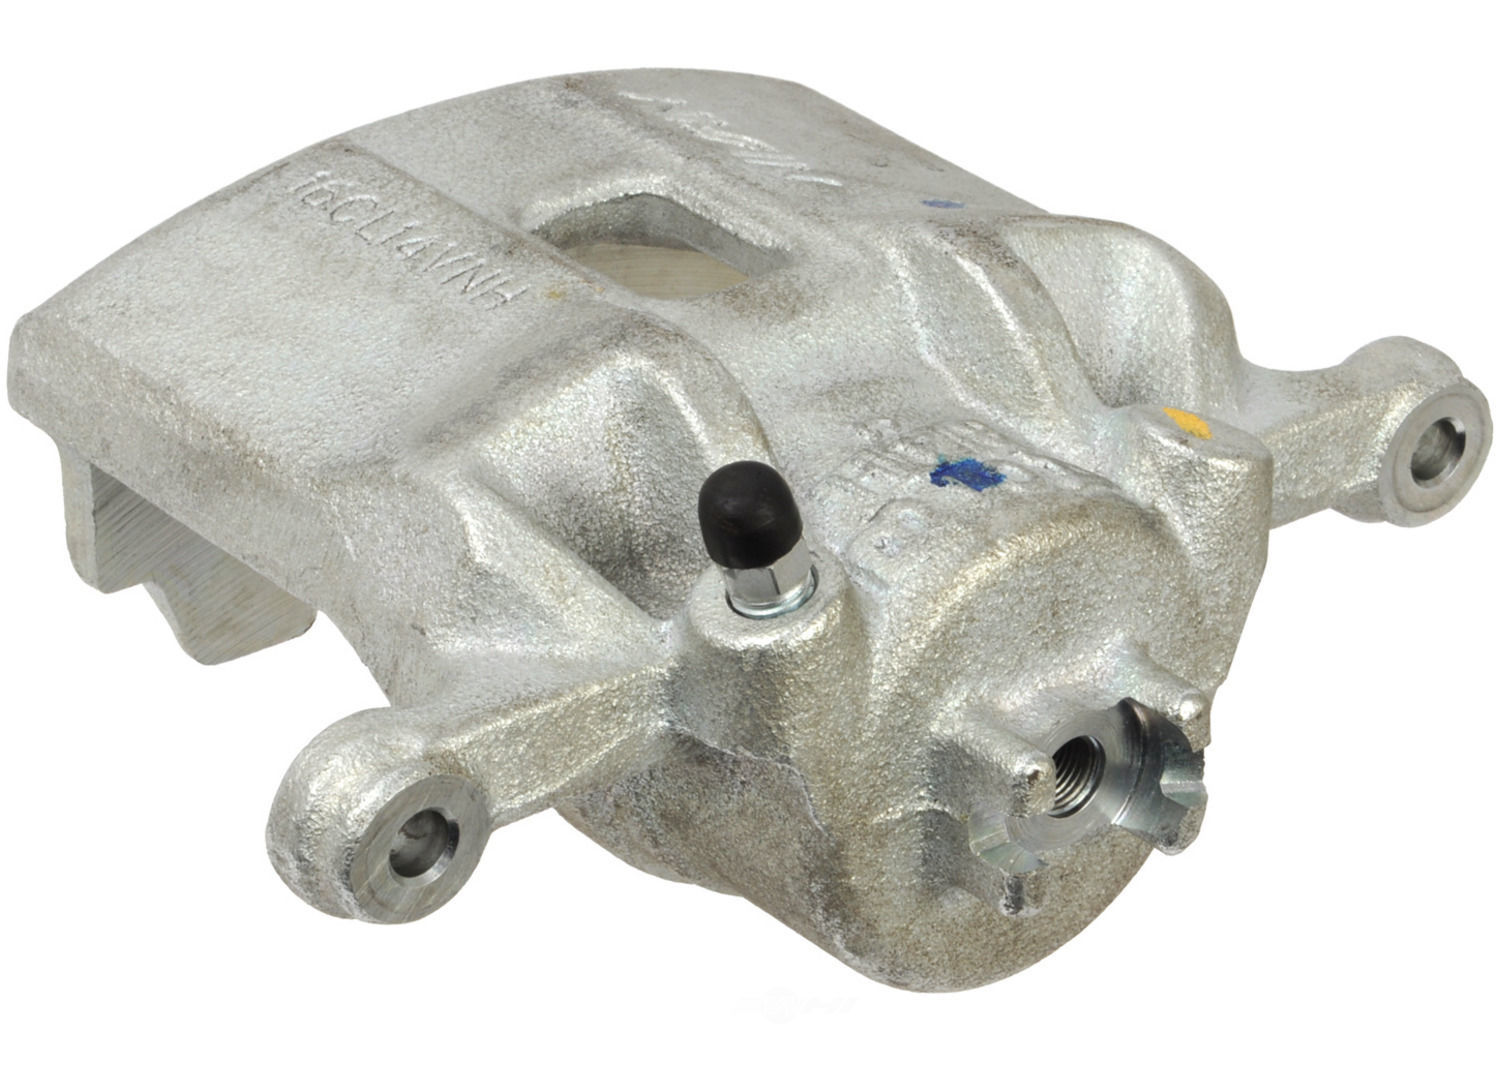 CARDONE / A-1 CARDONE - Reman A-1 Cardone Friction Choice Caliper - A1C 19-6038